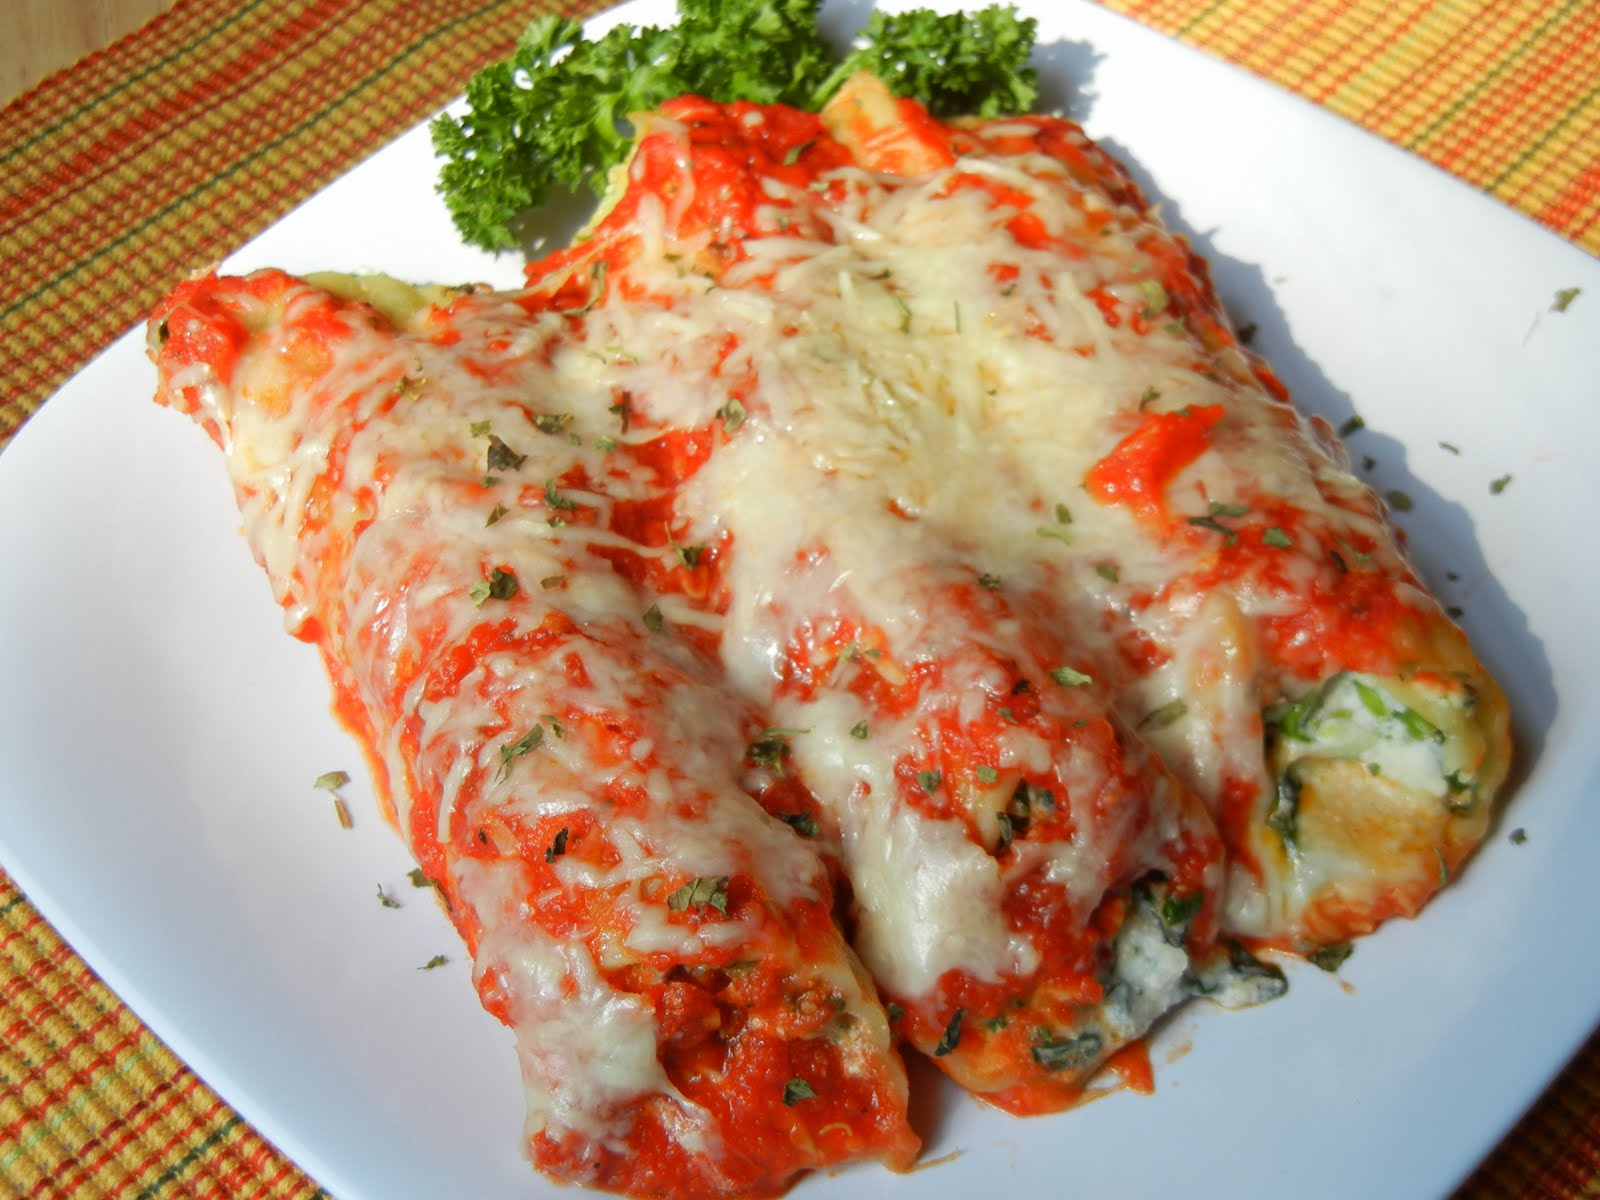 Mushroon Spinach Manicotti - Will Cook For Smiles